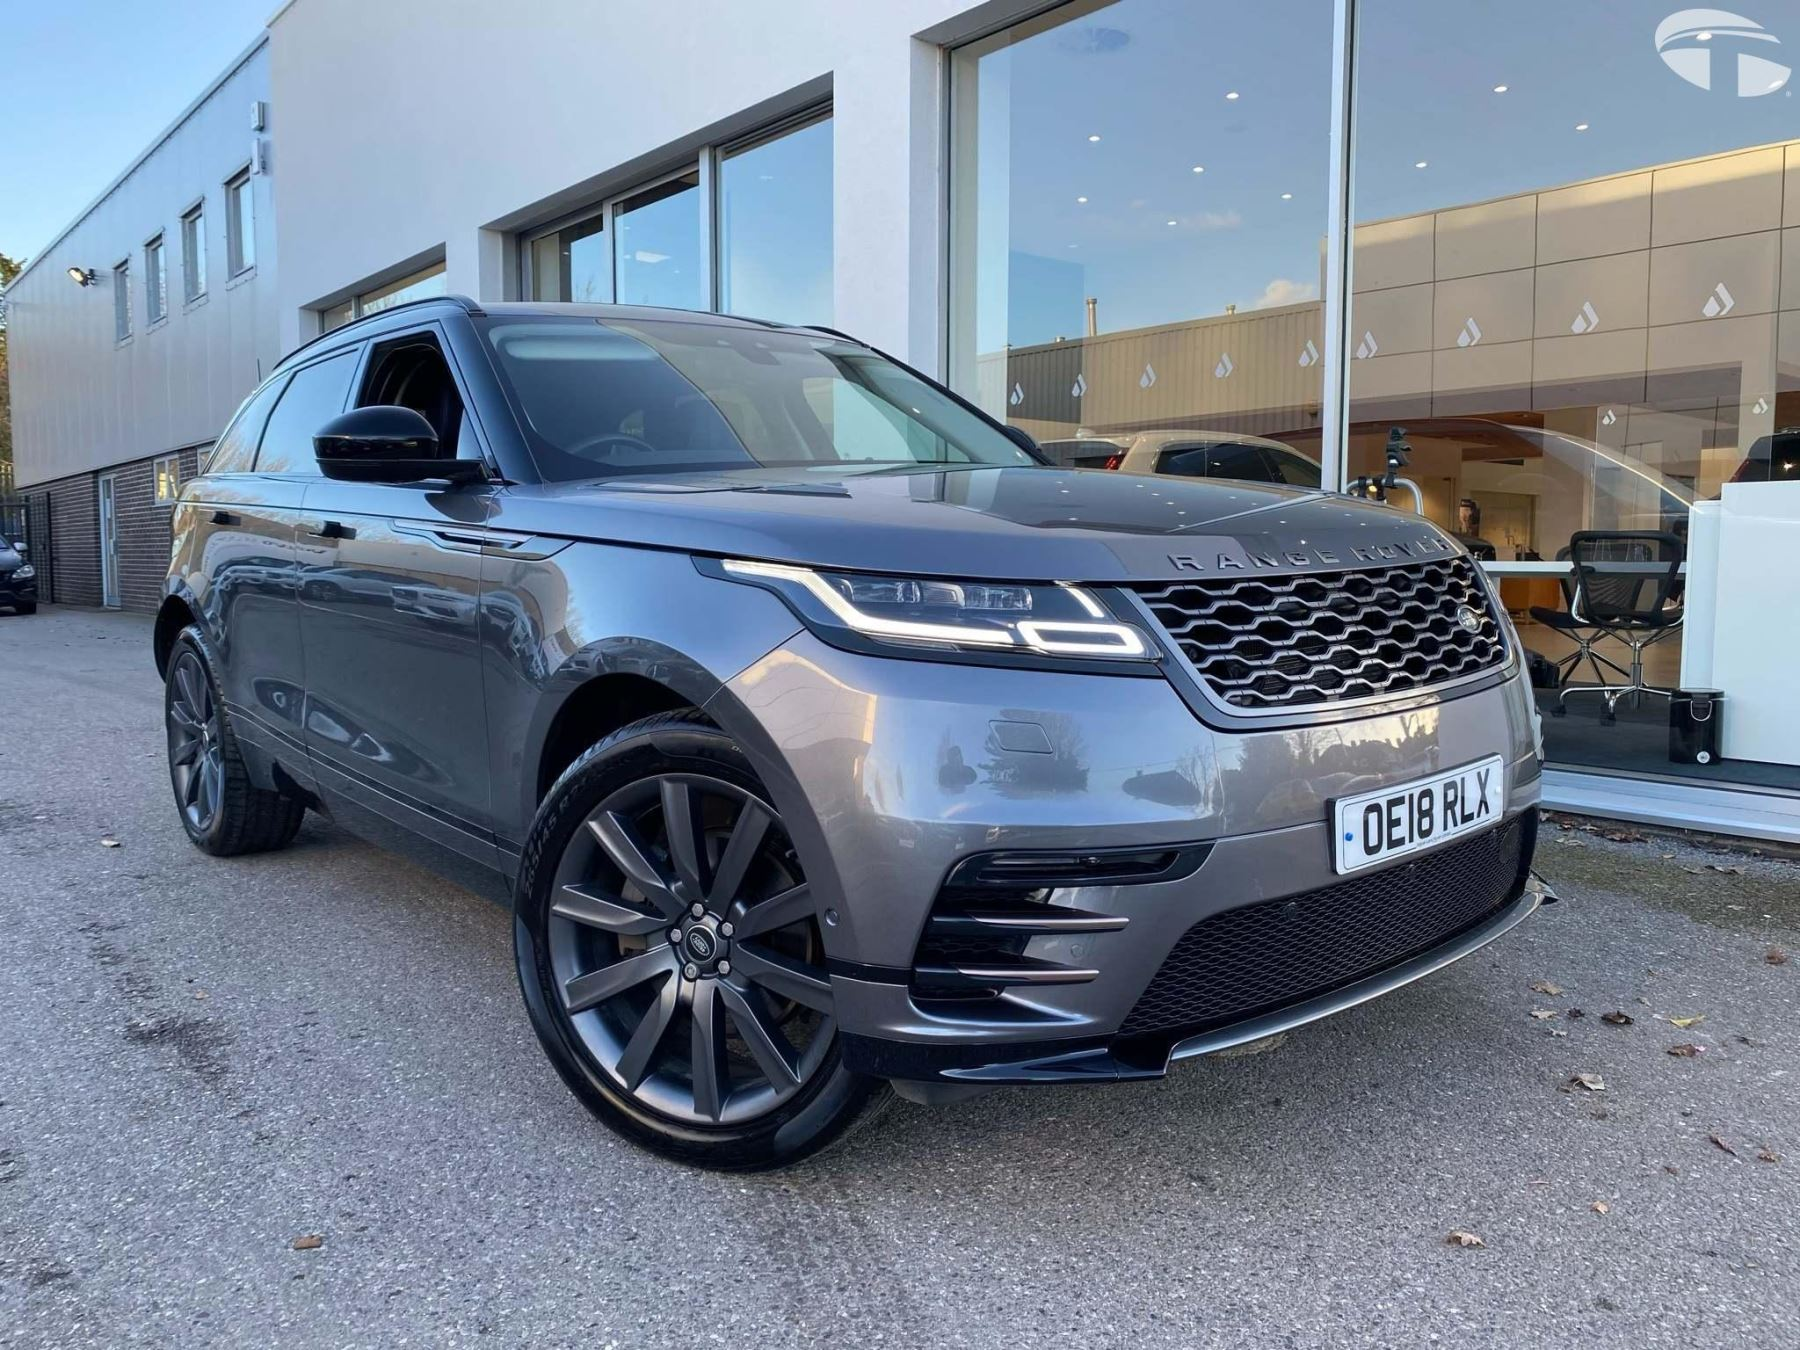 Land Rover Range Rover Velar 3.0 P380 R-Dynamic HSE 5dr Automatic Estate (2018)